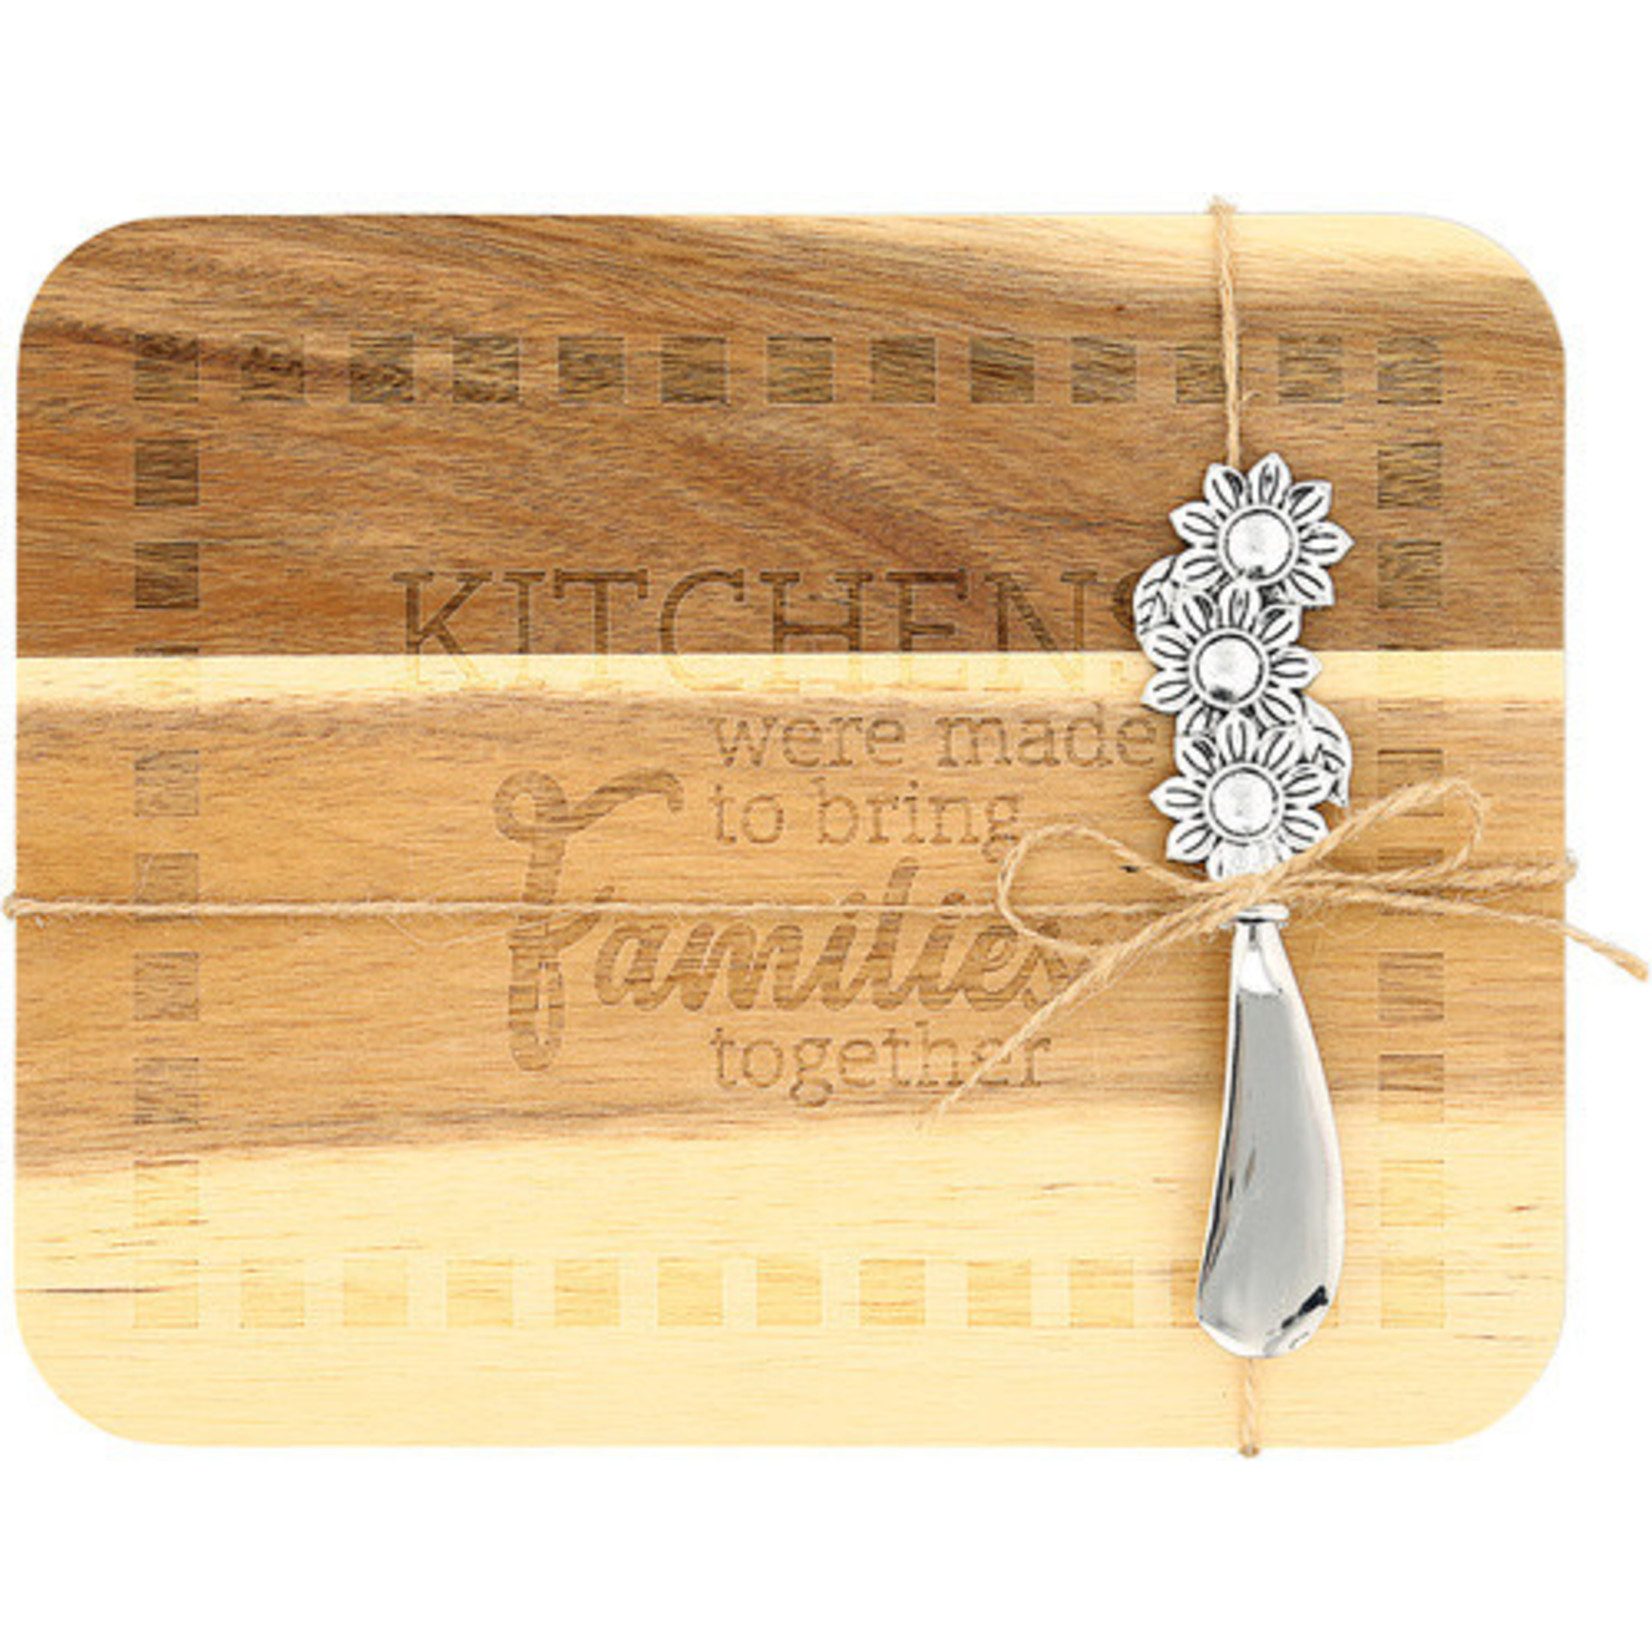 """Pavilion Gift Co. Kitchen: Family Serving Board 9""""x7"""""""